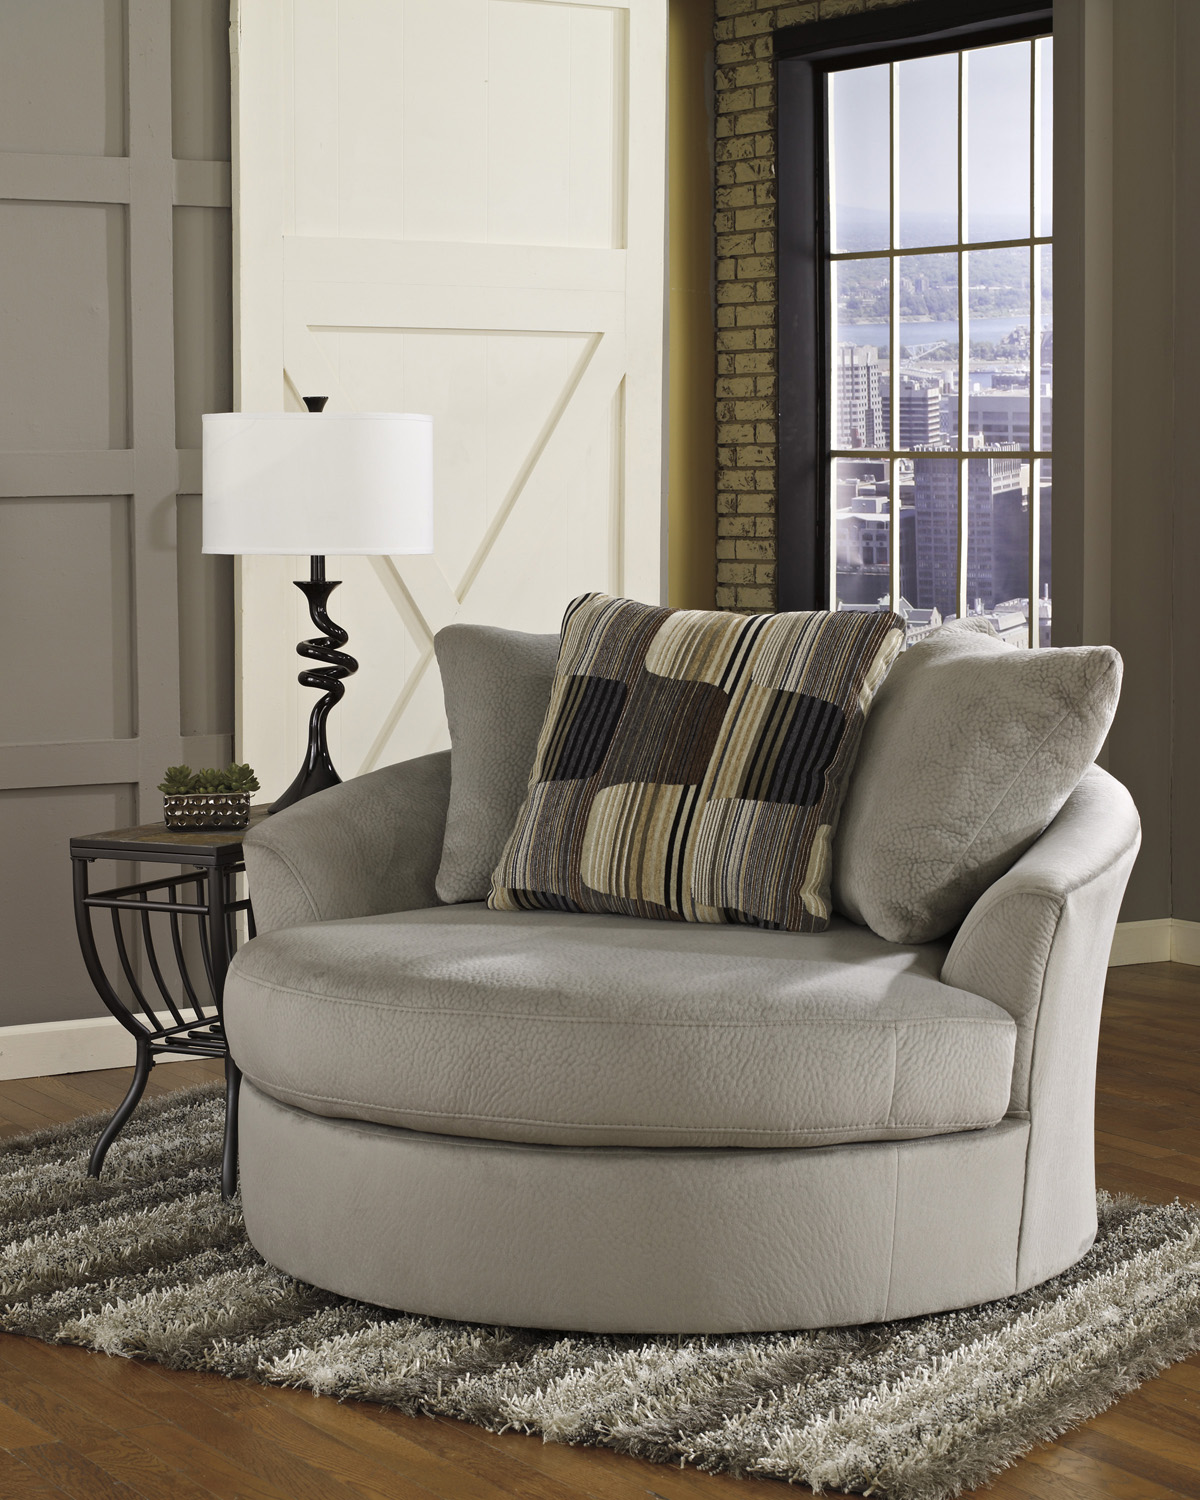 Oversized Swivel Accent Chair & Oversized Swivel Accent Chair | Pin Your Best Home Decor (Shared ...